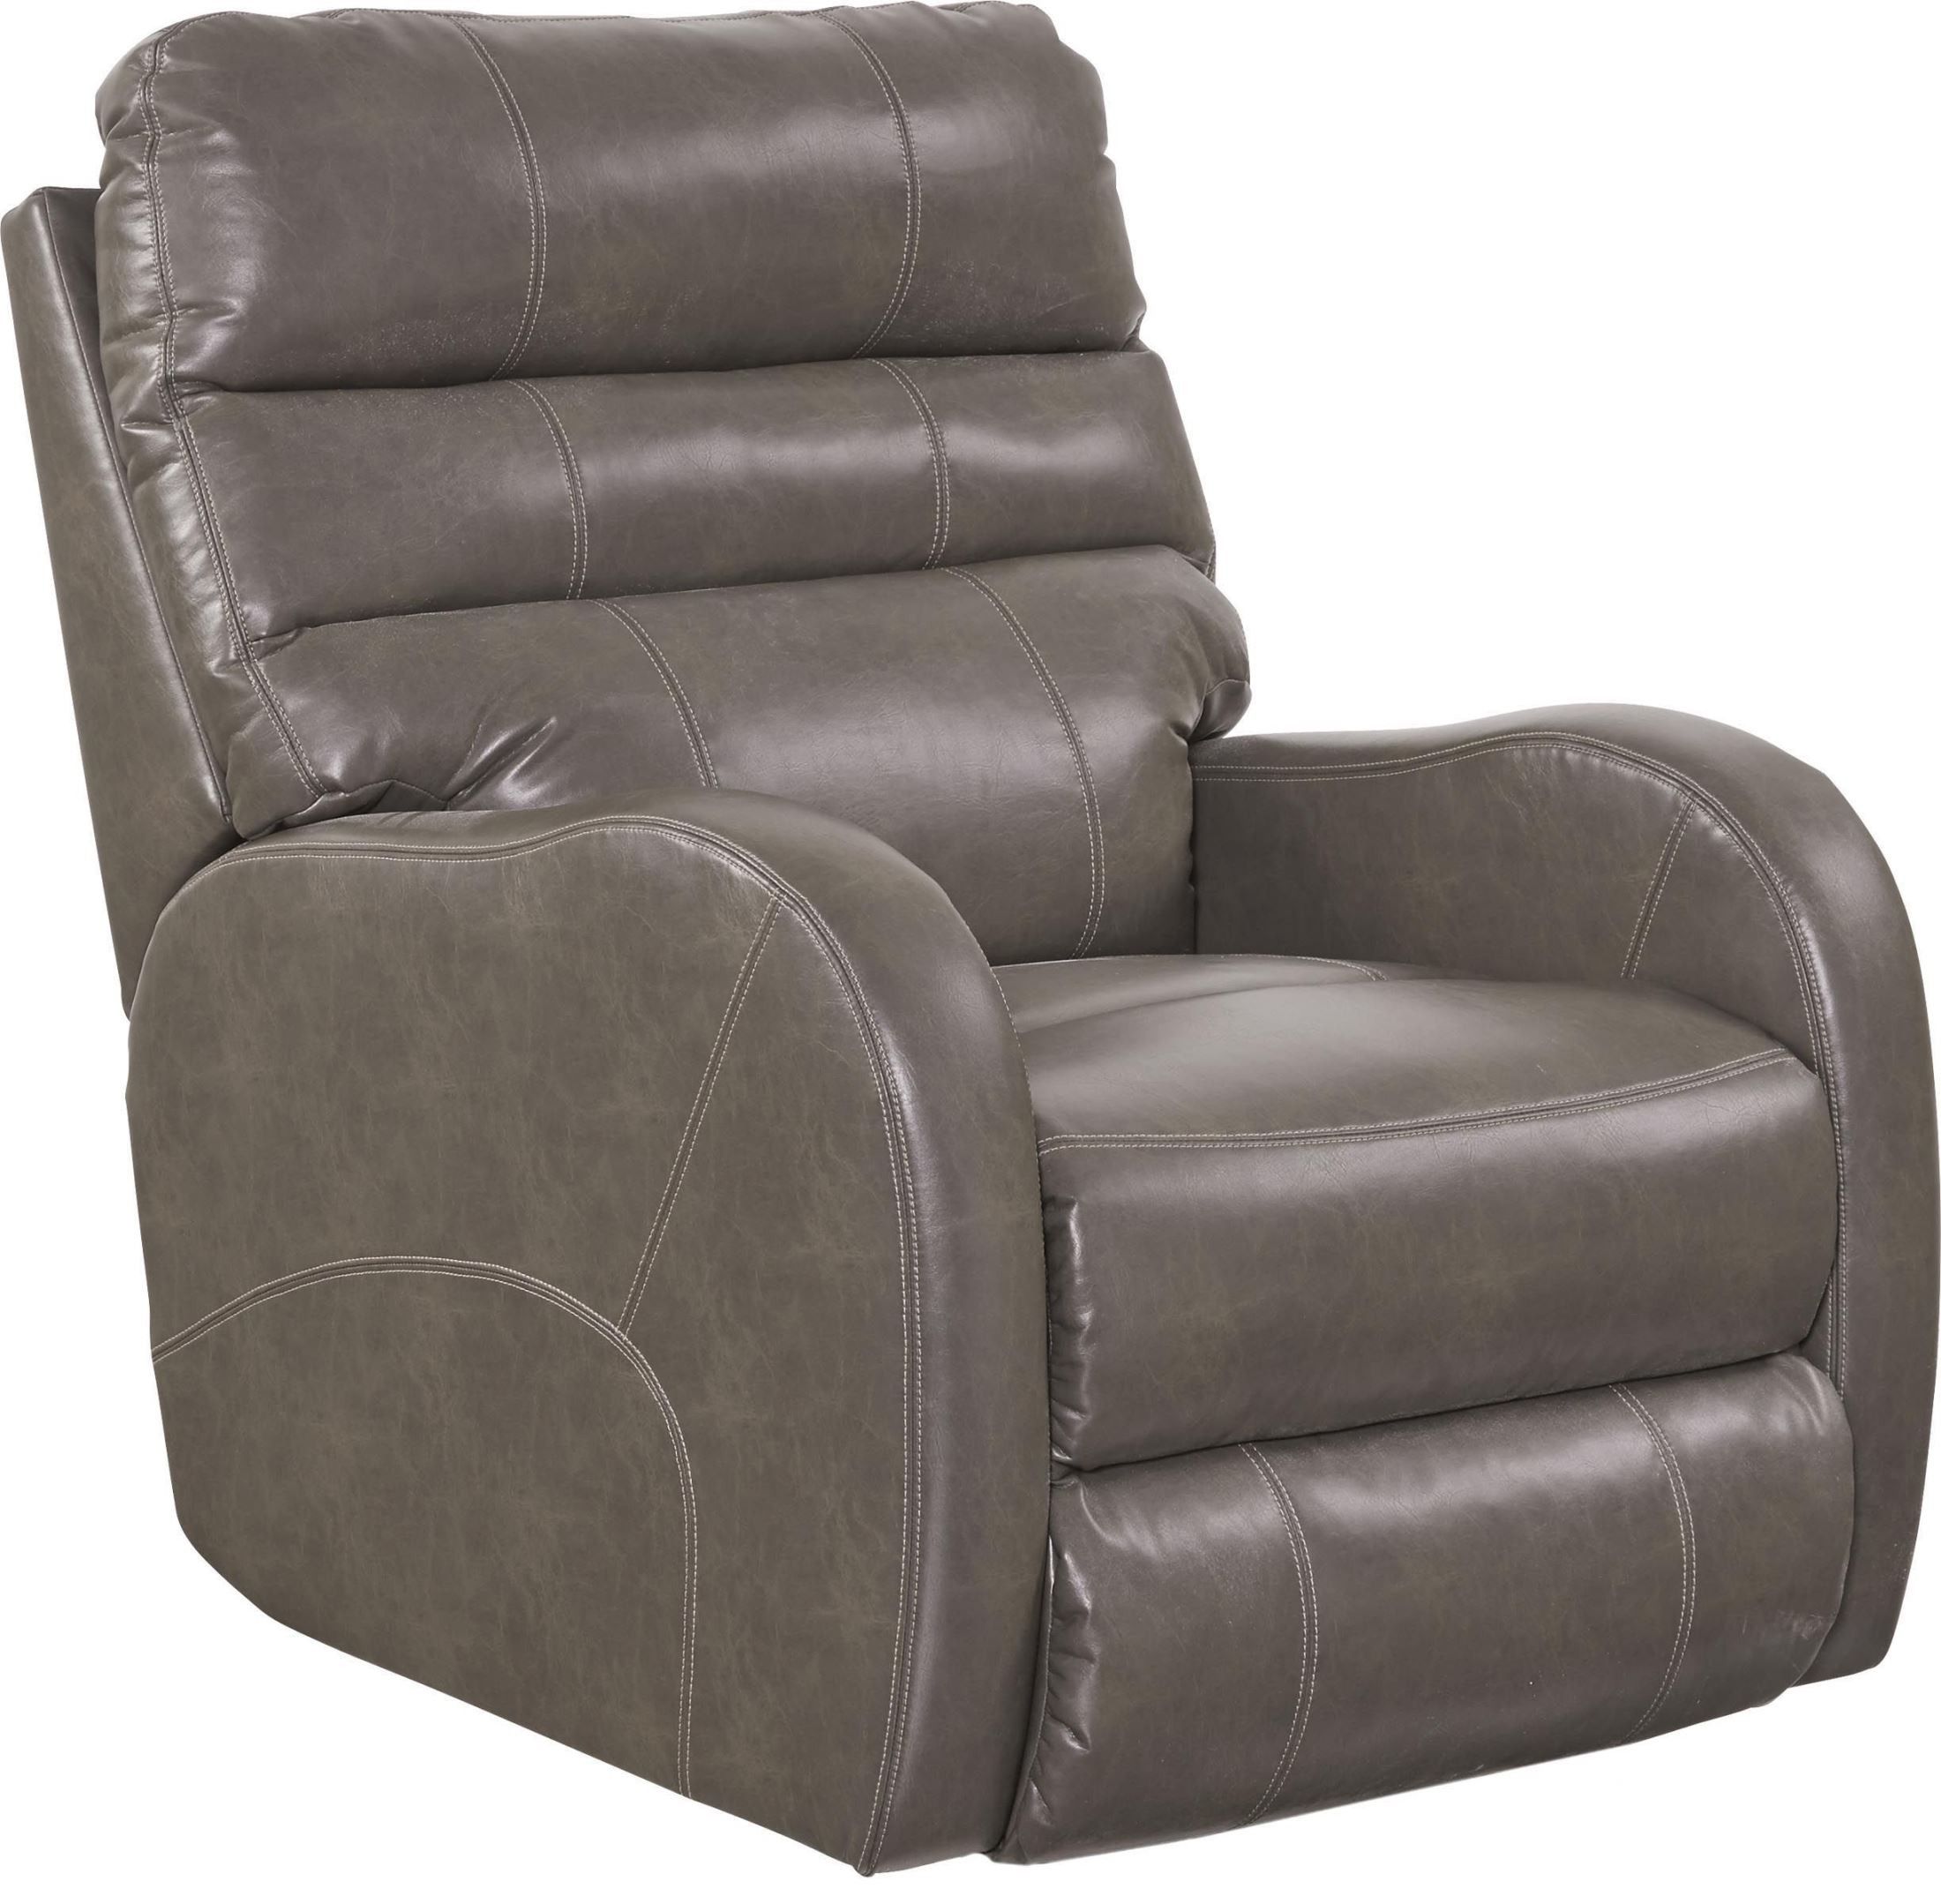 Searcy ash wall hugger power recliner from catnapper for Catnapper cloud nine chaise recliner